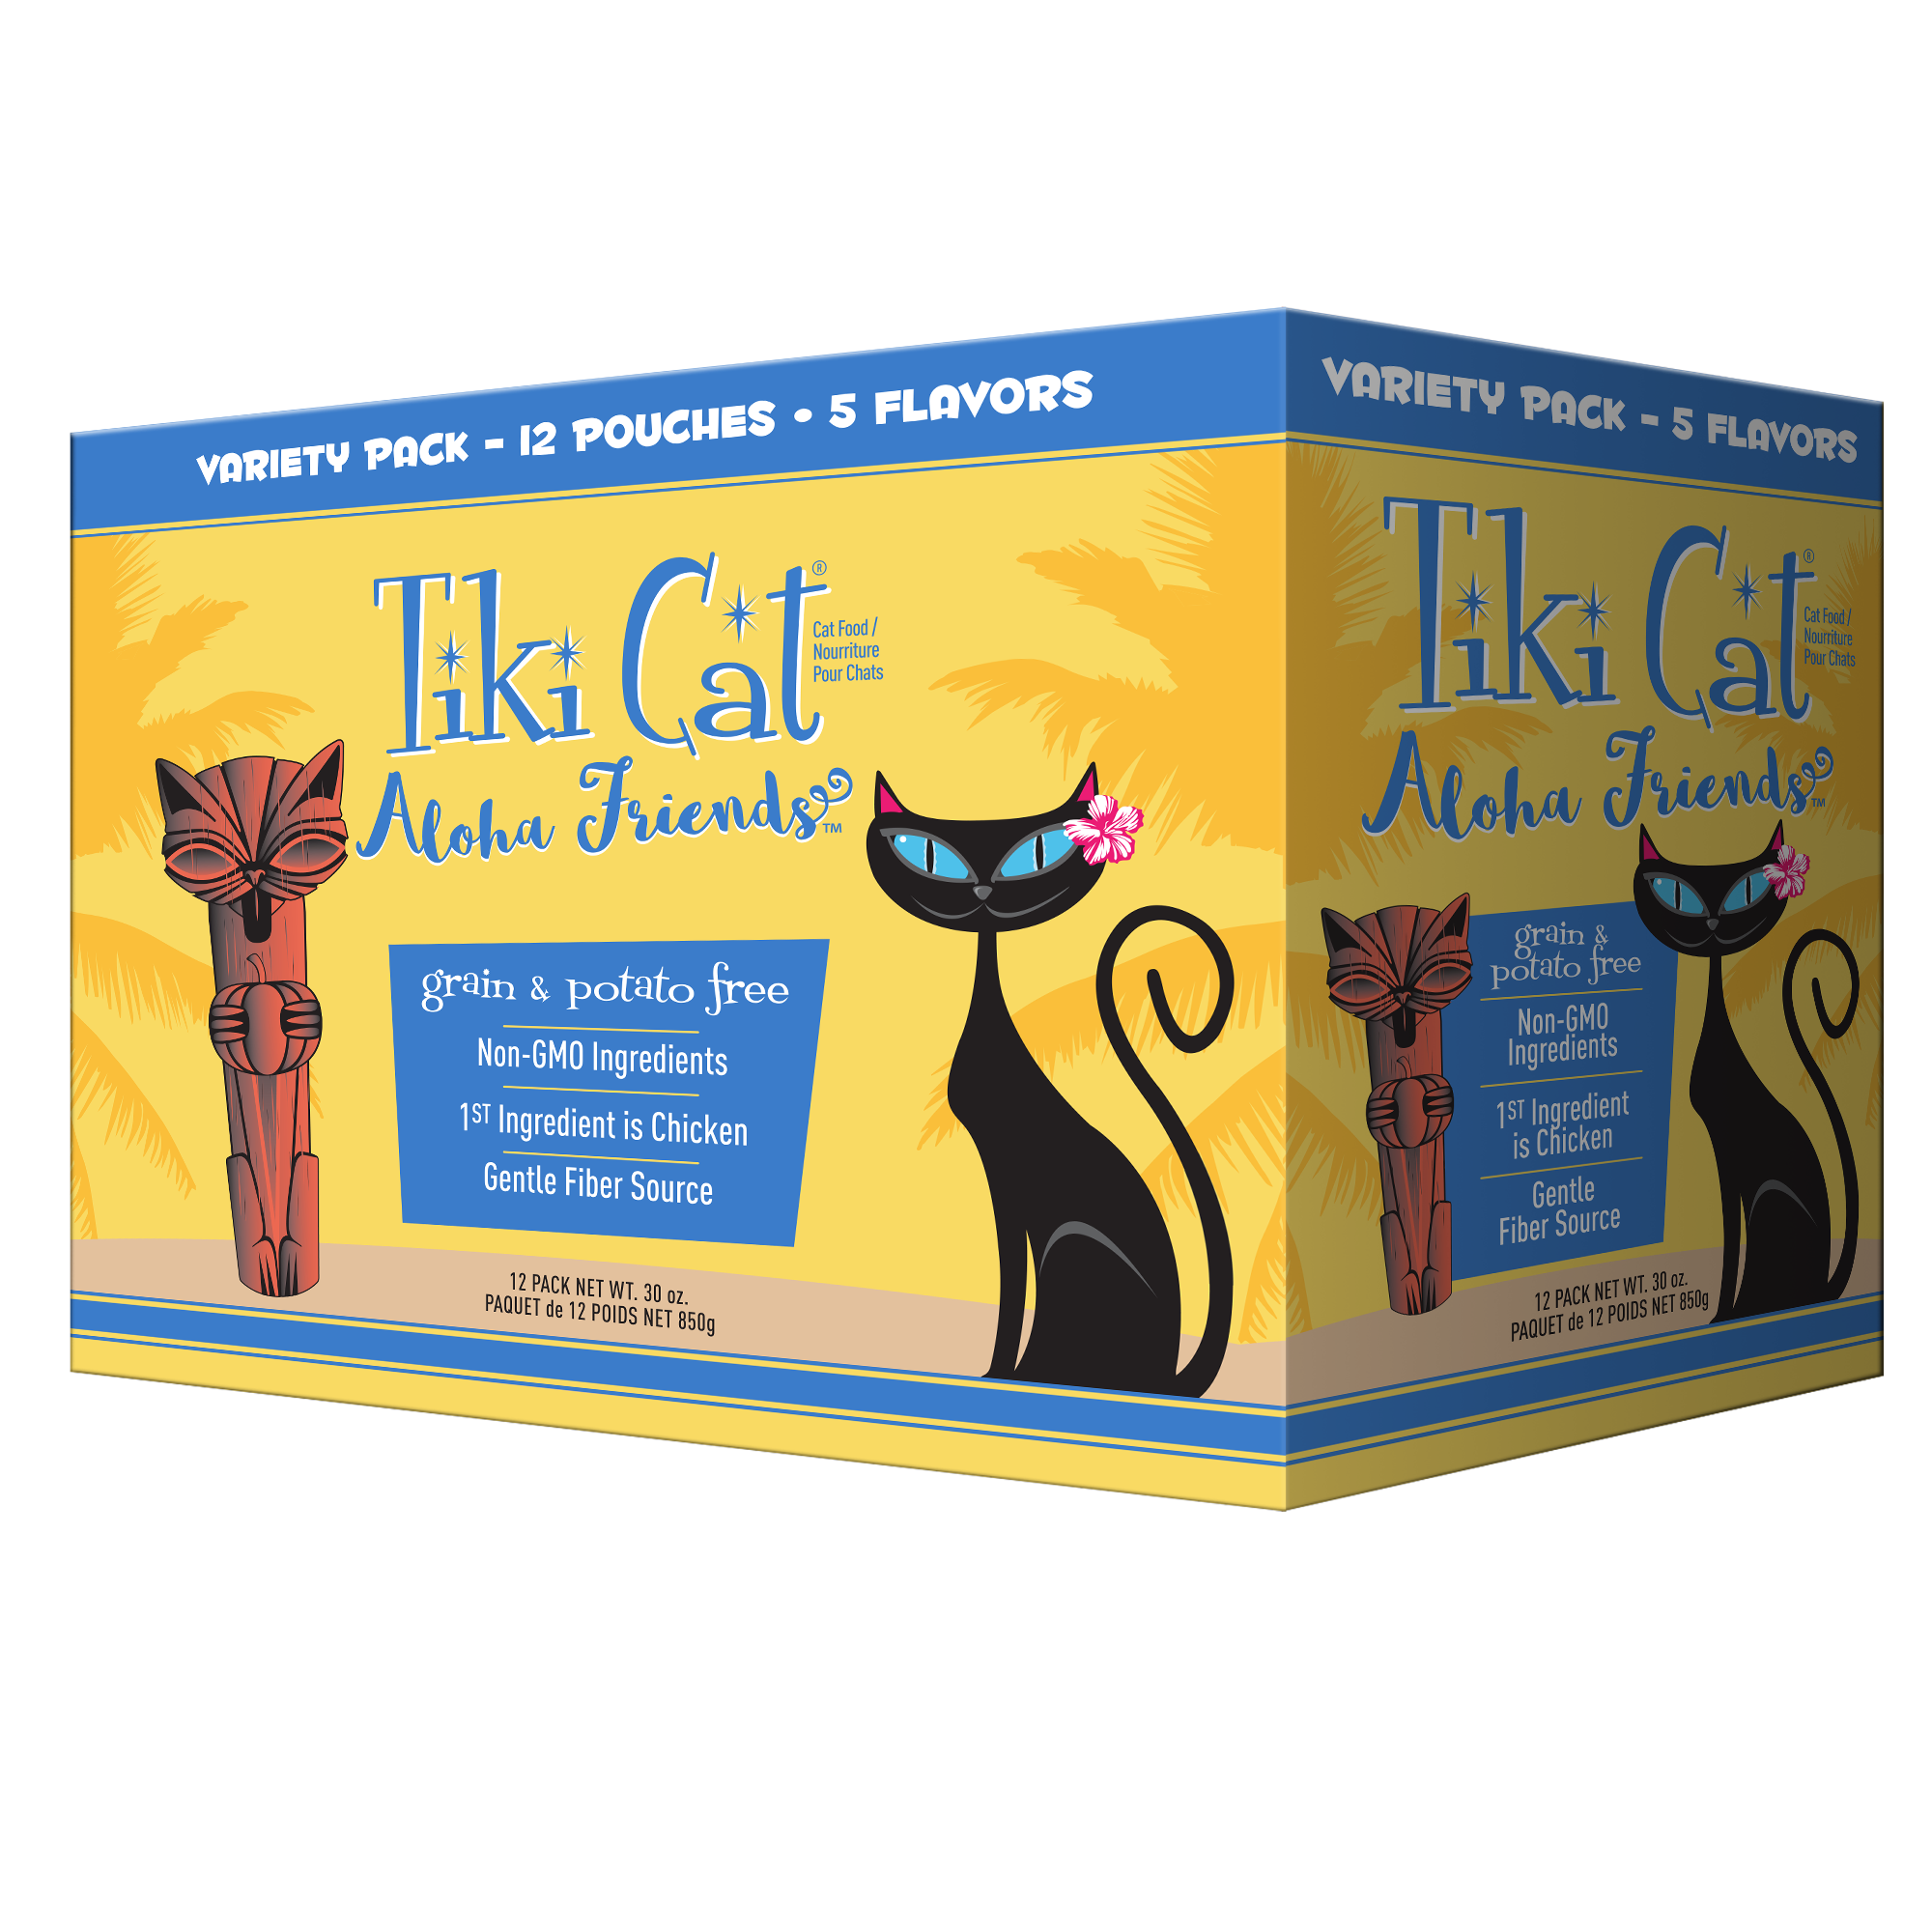 Tiki Cat Aloha Friends Chicken Variety Pack